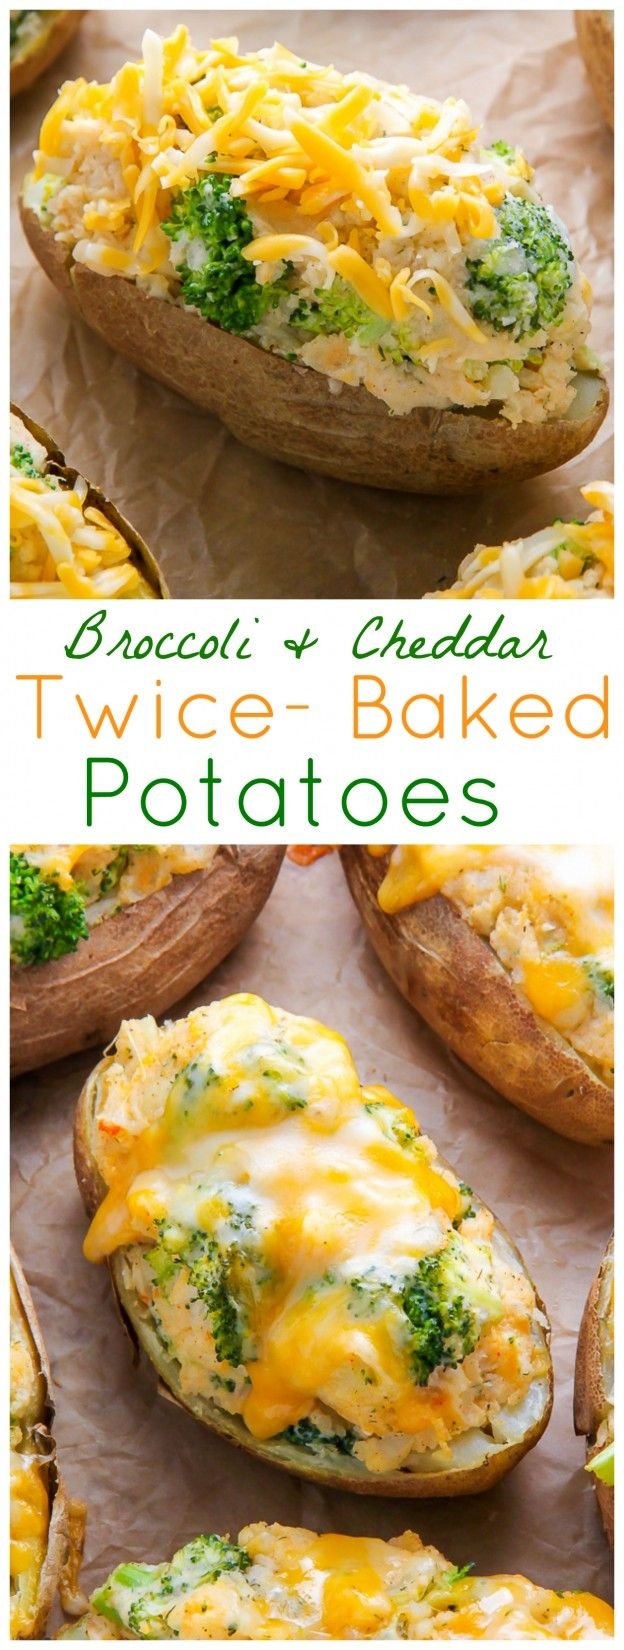 AMAZING FLAVOR! Crispy broccoli and cheddar twice-baked potatoes are comfort food at its best. Click through for the recipe and step-by-step photos.